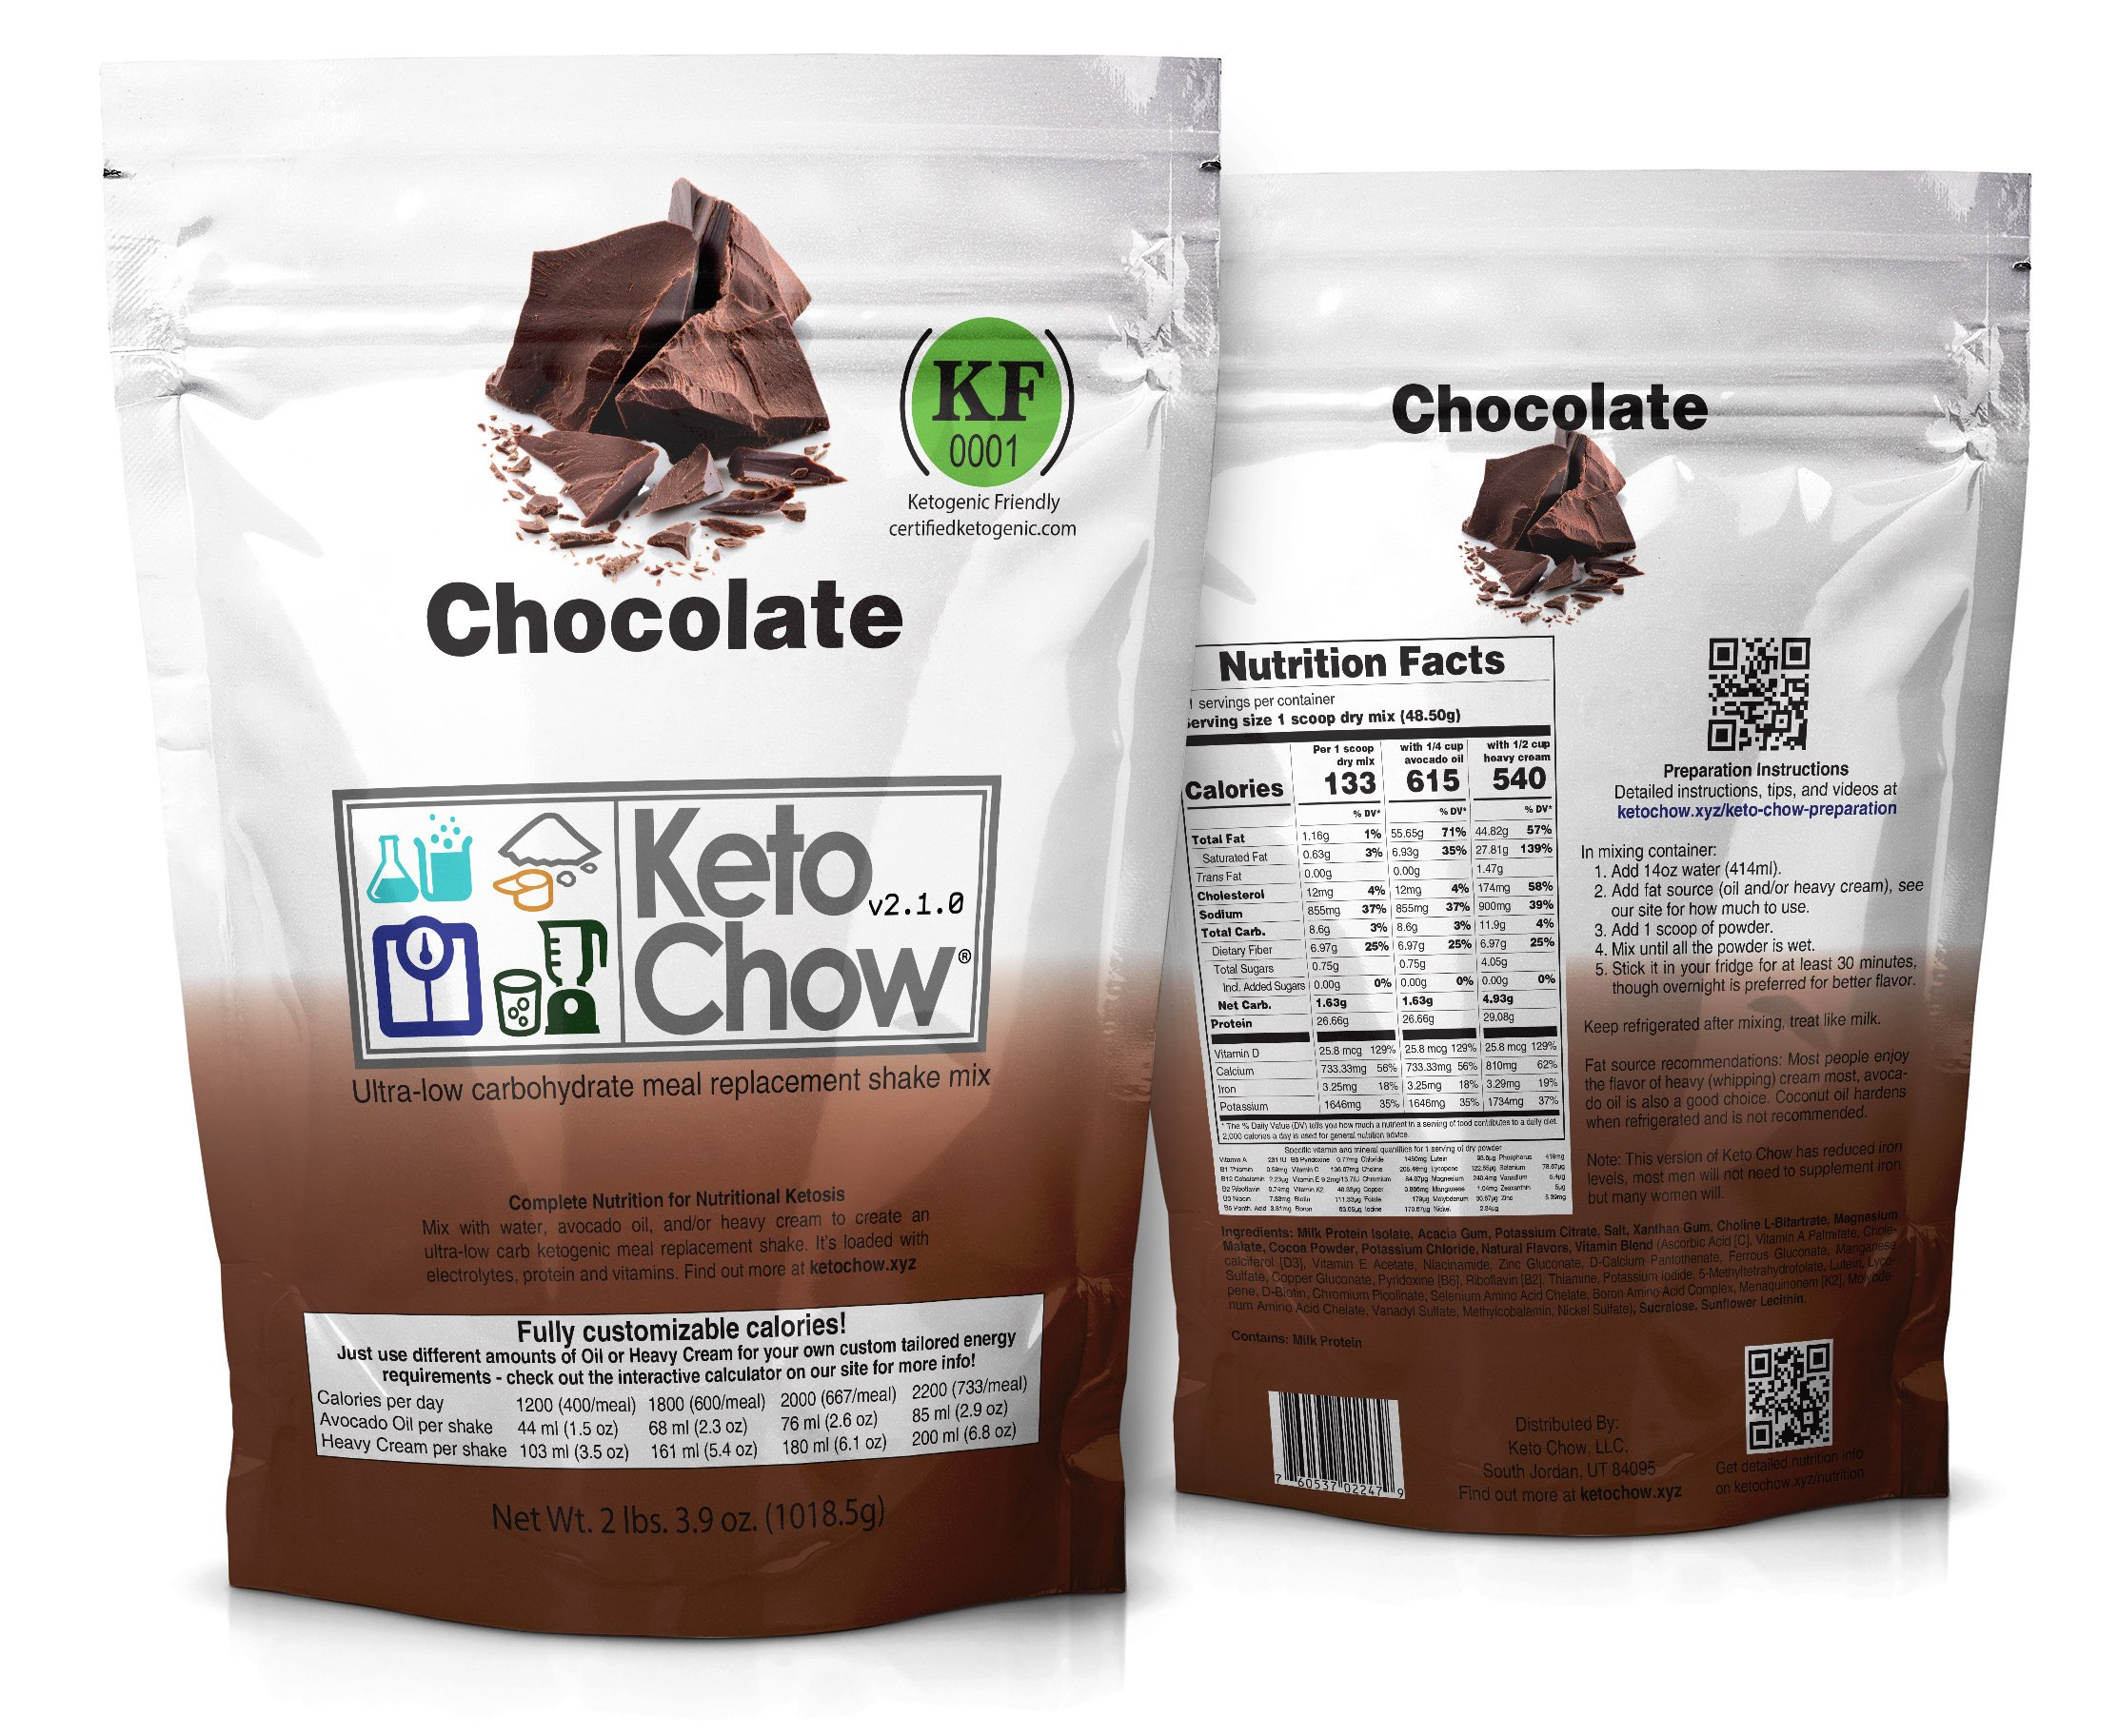 Keto-Chow-Ultra-Low-Carb-Meal-Replacement-Shake-complete-nutrition-for-Ketogenic-Diet